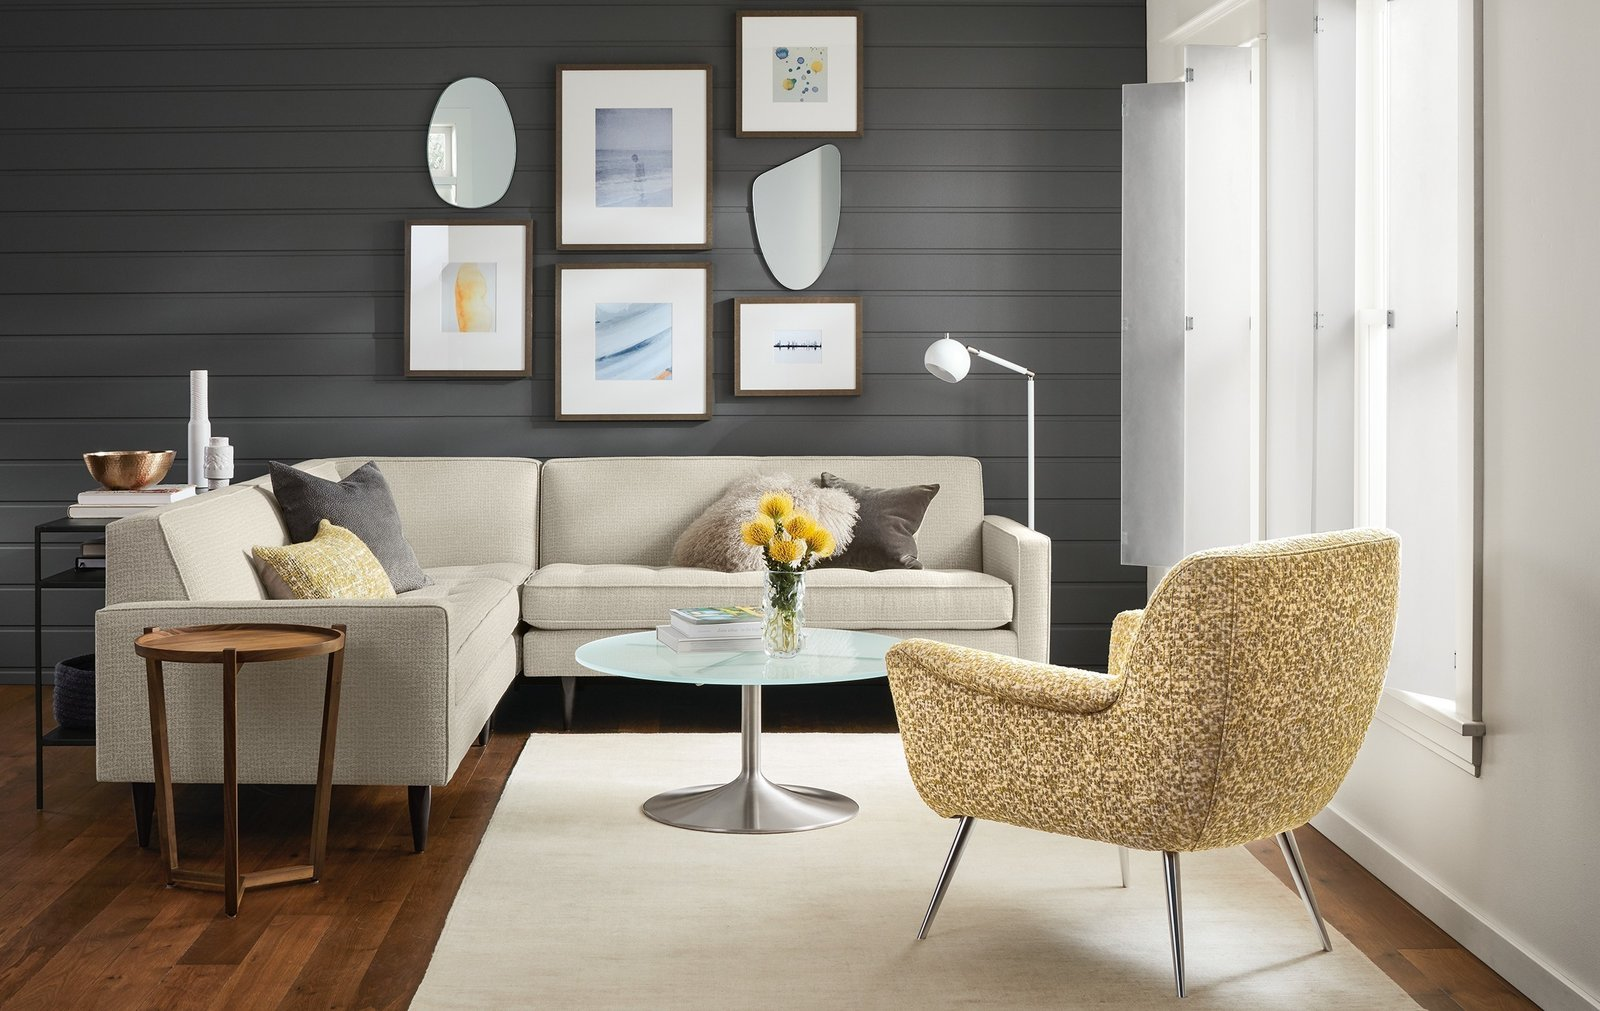 A small-scale sectional with sophisticated style, Reese adds refinement with details like button tufting, precise welting and tall, tapered legs.  Modern Living Room Furniture by Room & Board